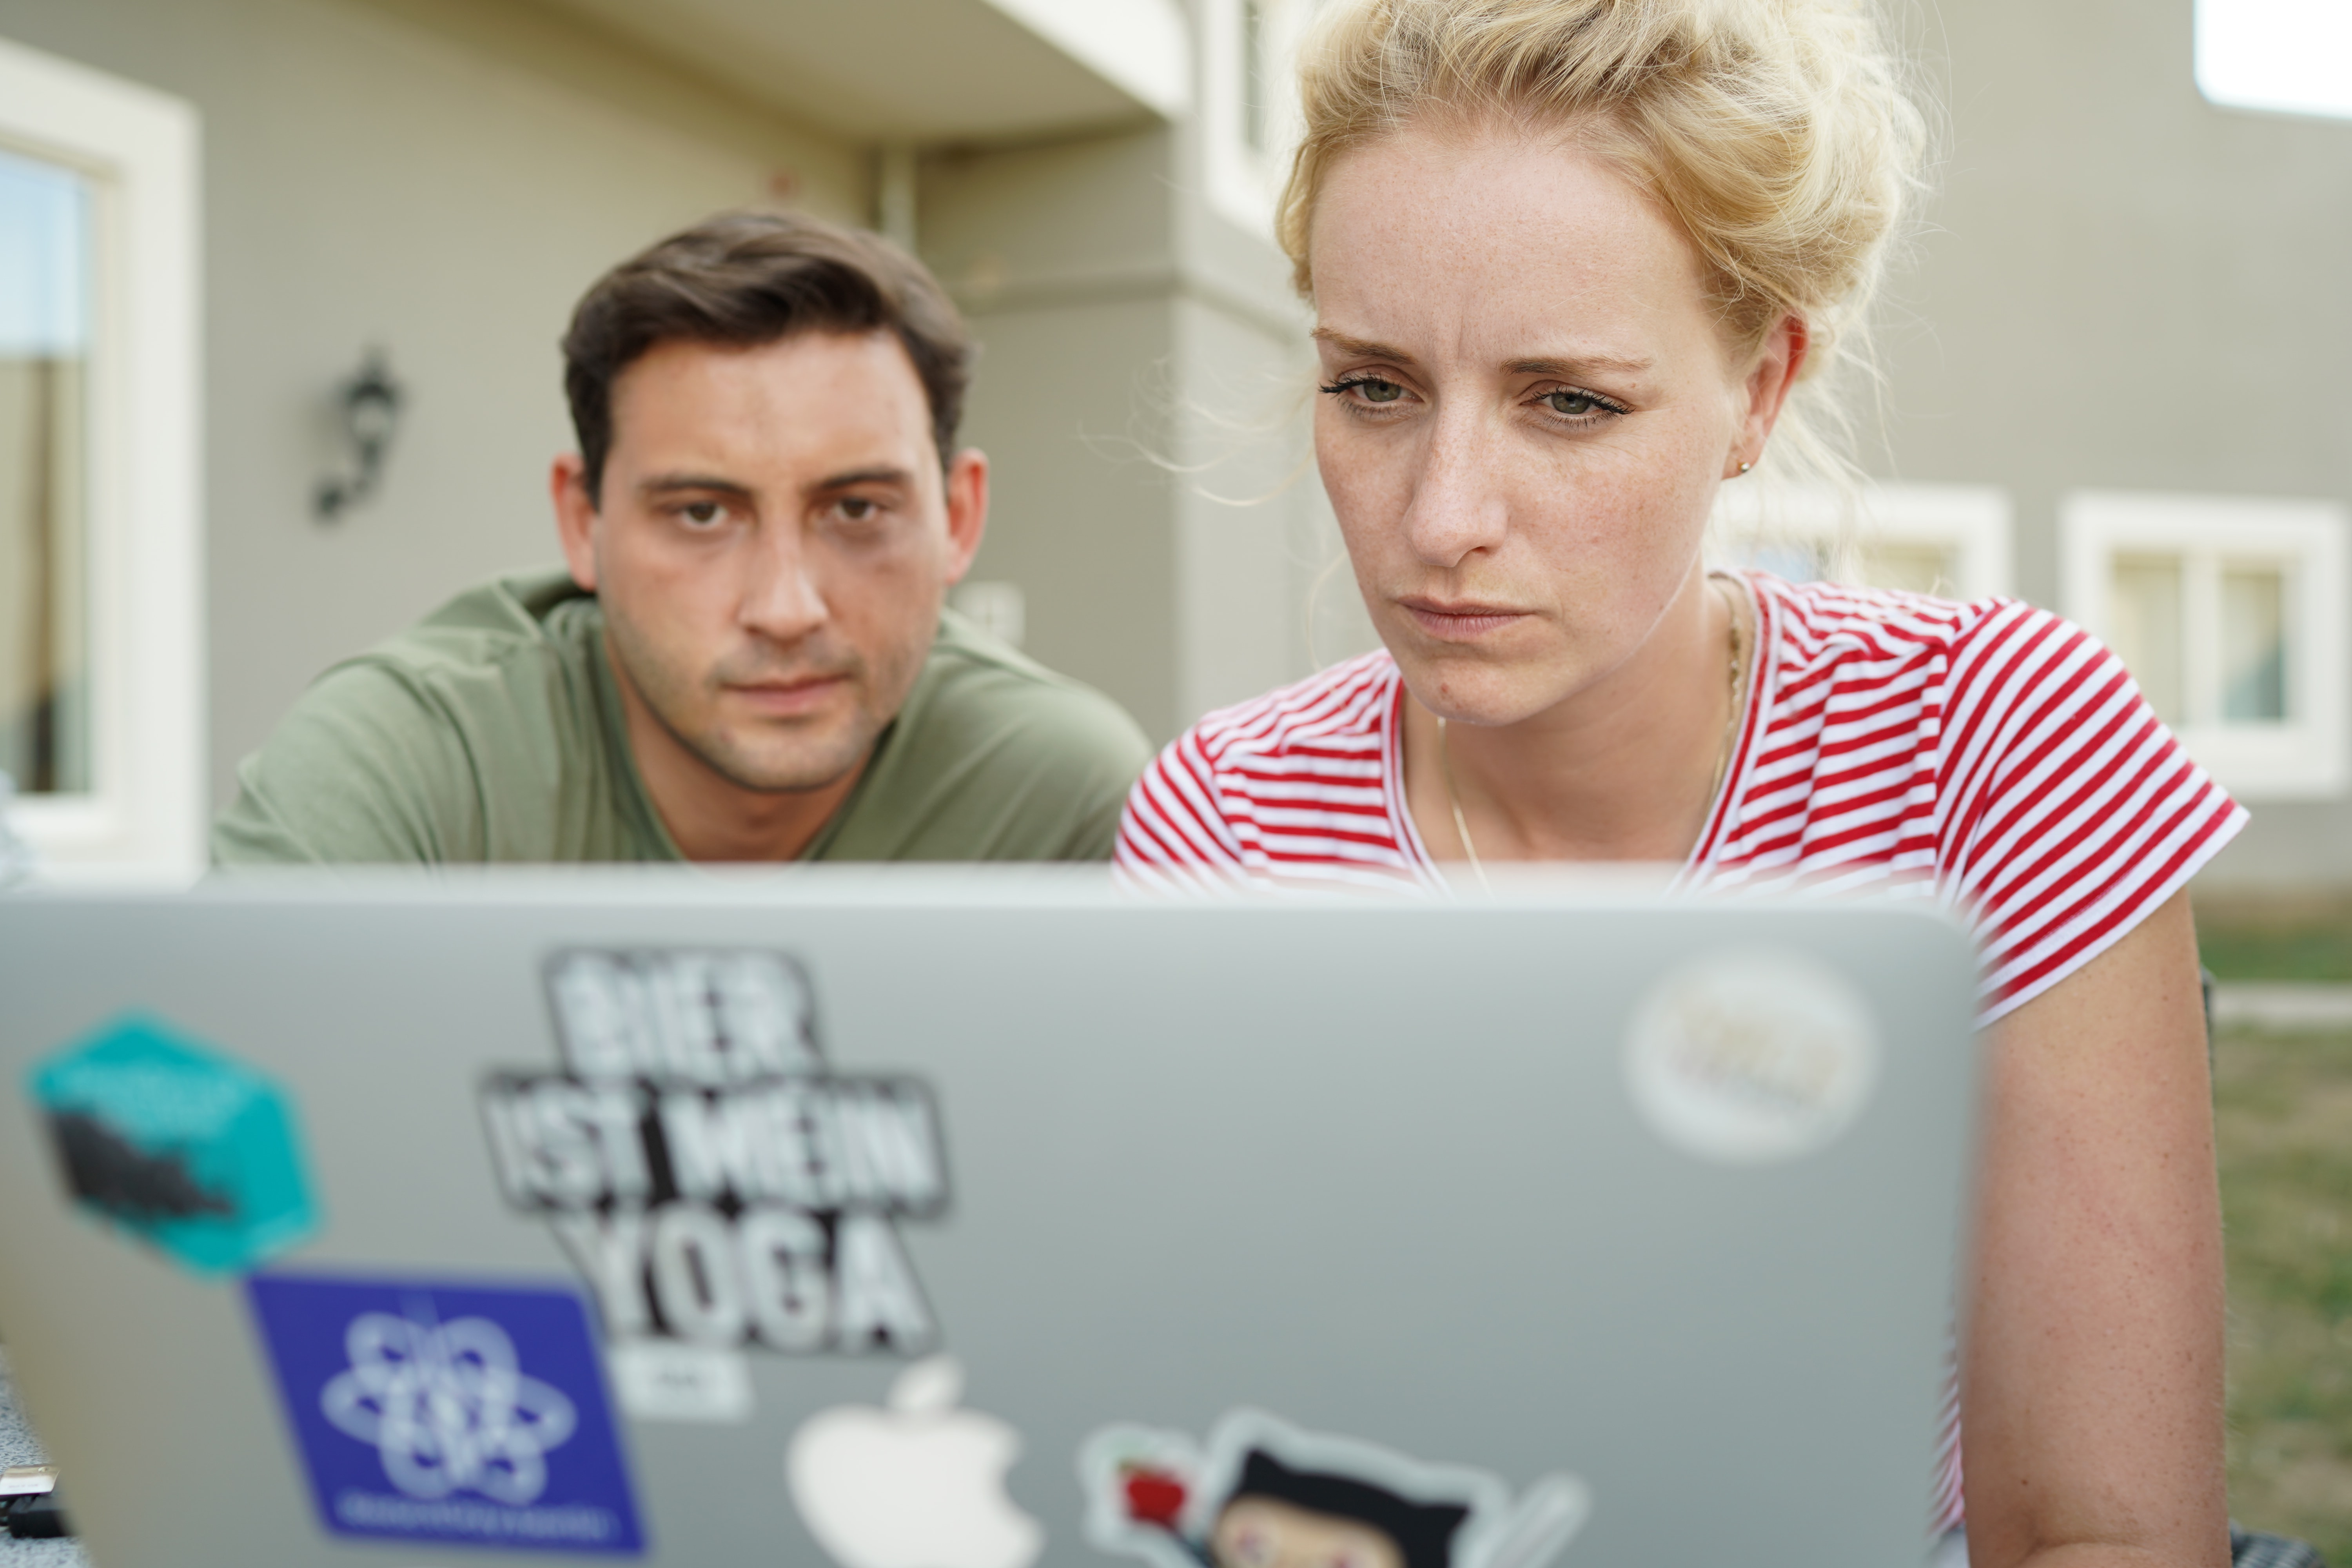 Two people looking at a laptop - code camp 2018